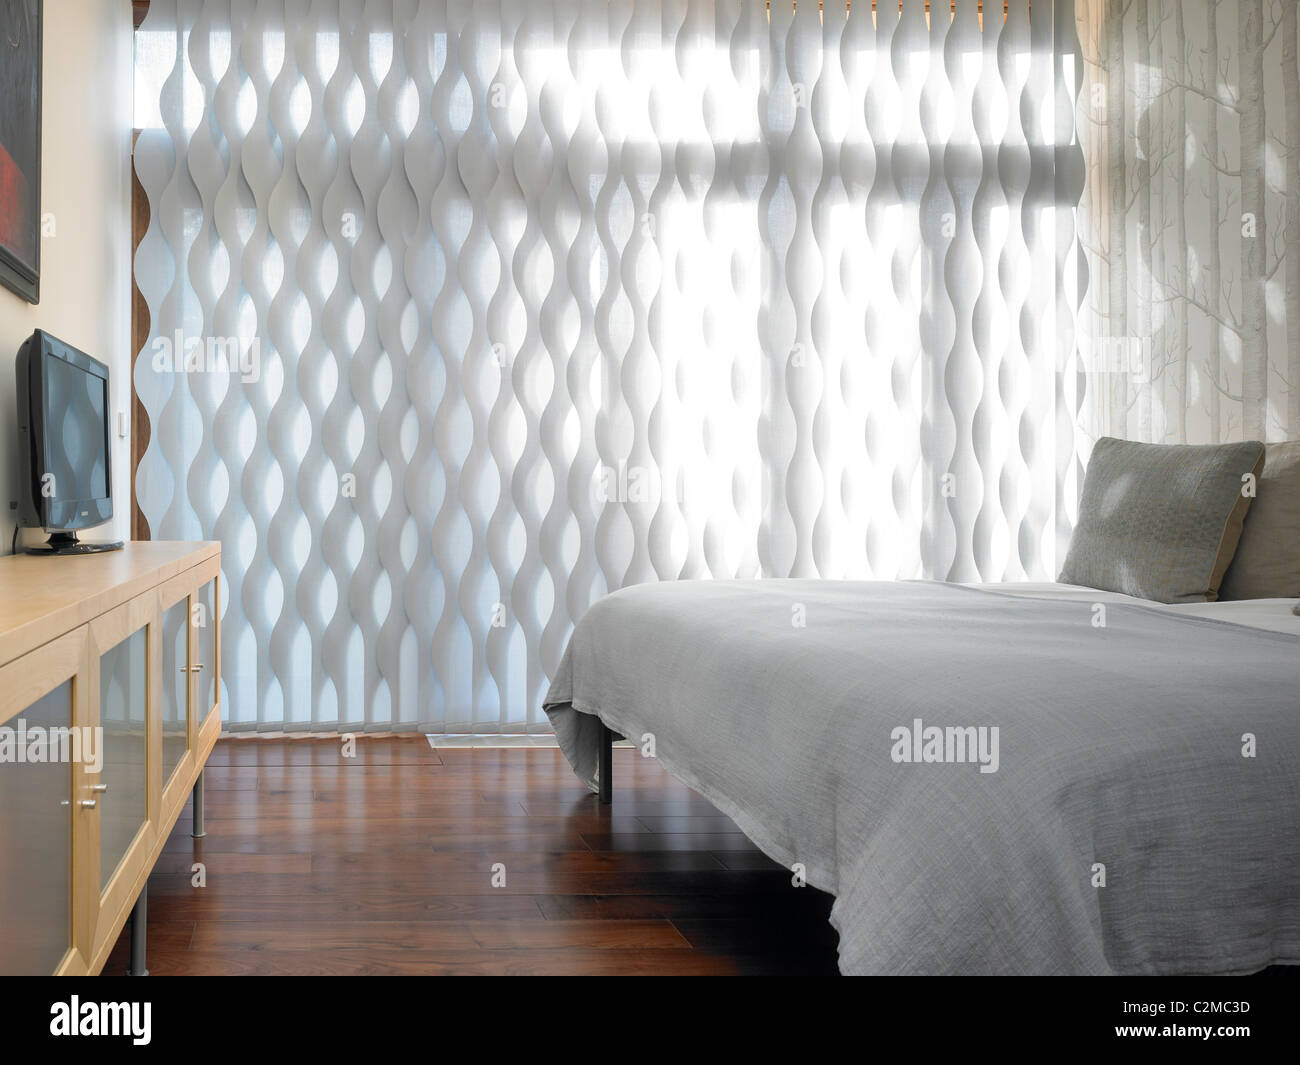 bzdet curtain in maruti curtains house dealers bhuj justdial of